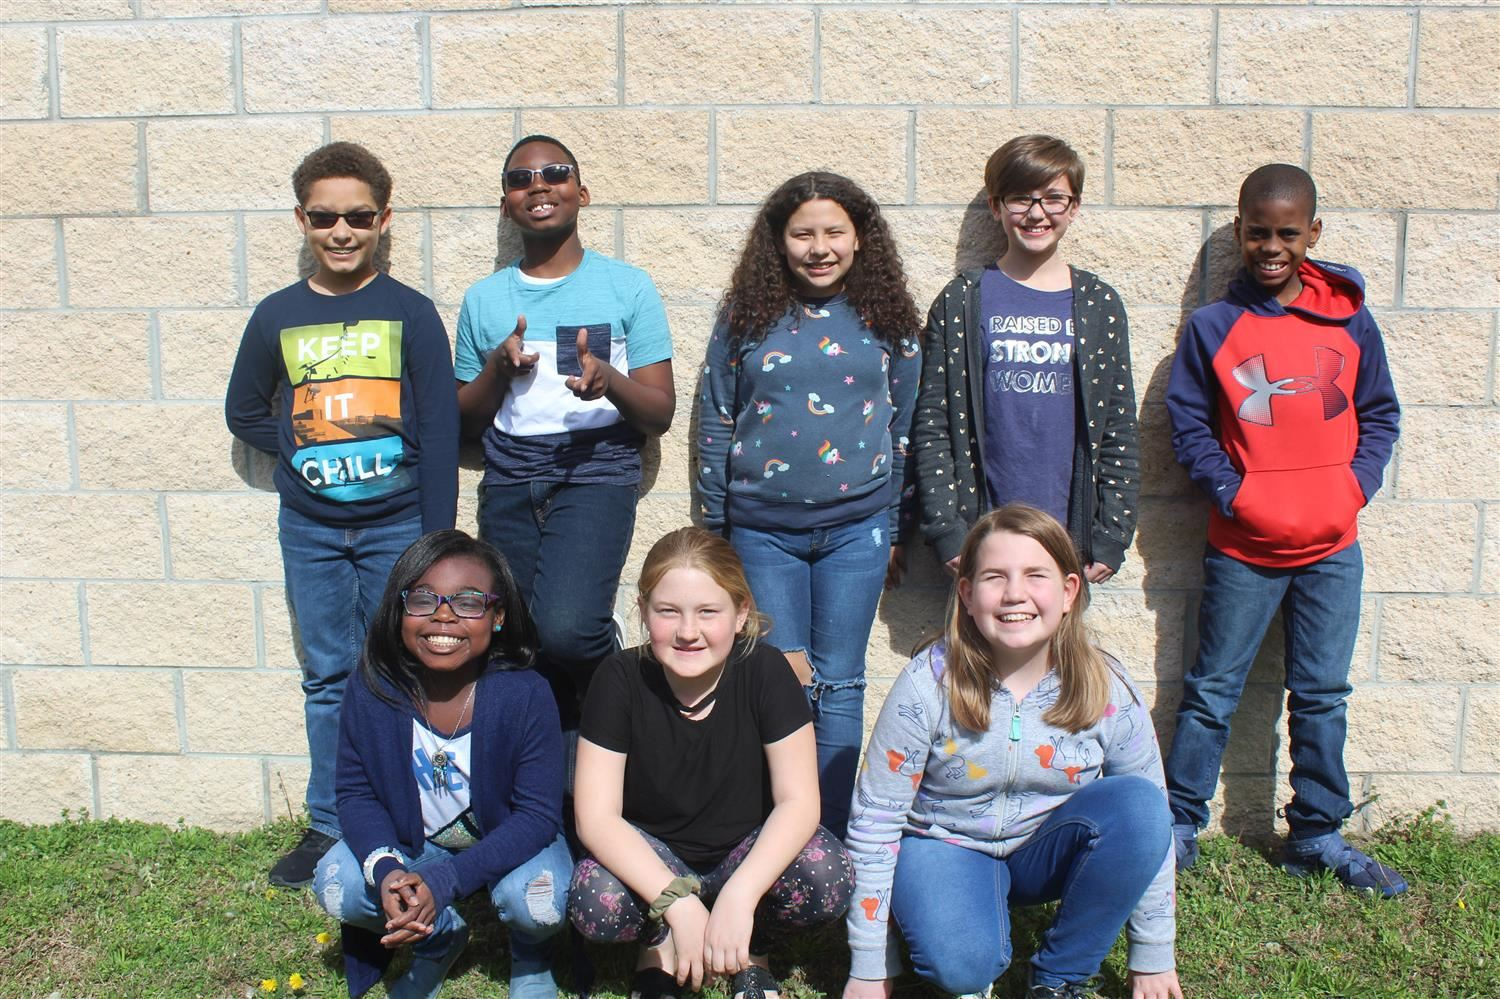 Members of the Elementary Battle of the Books